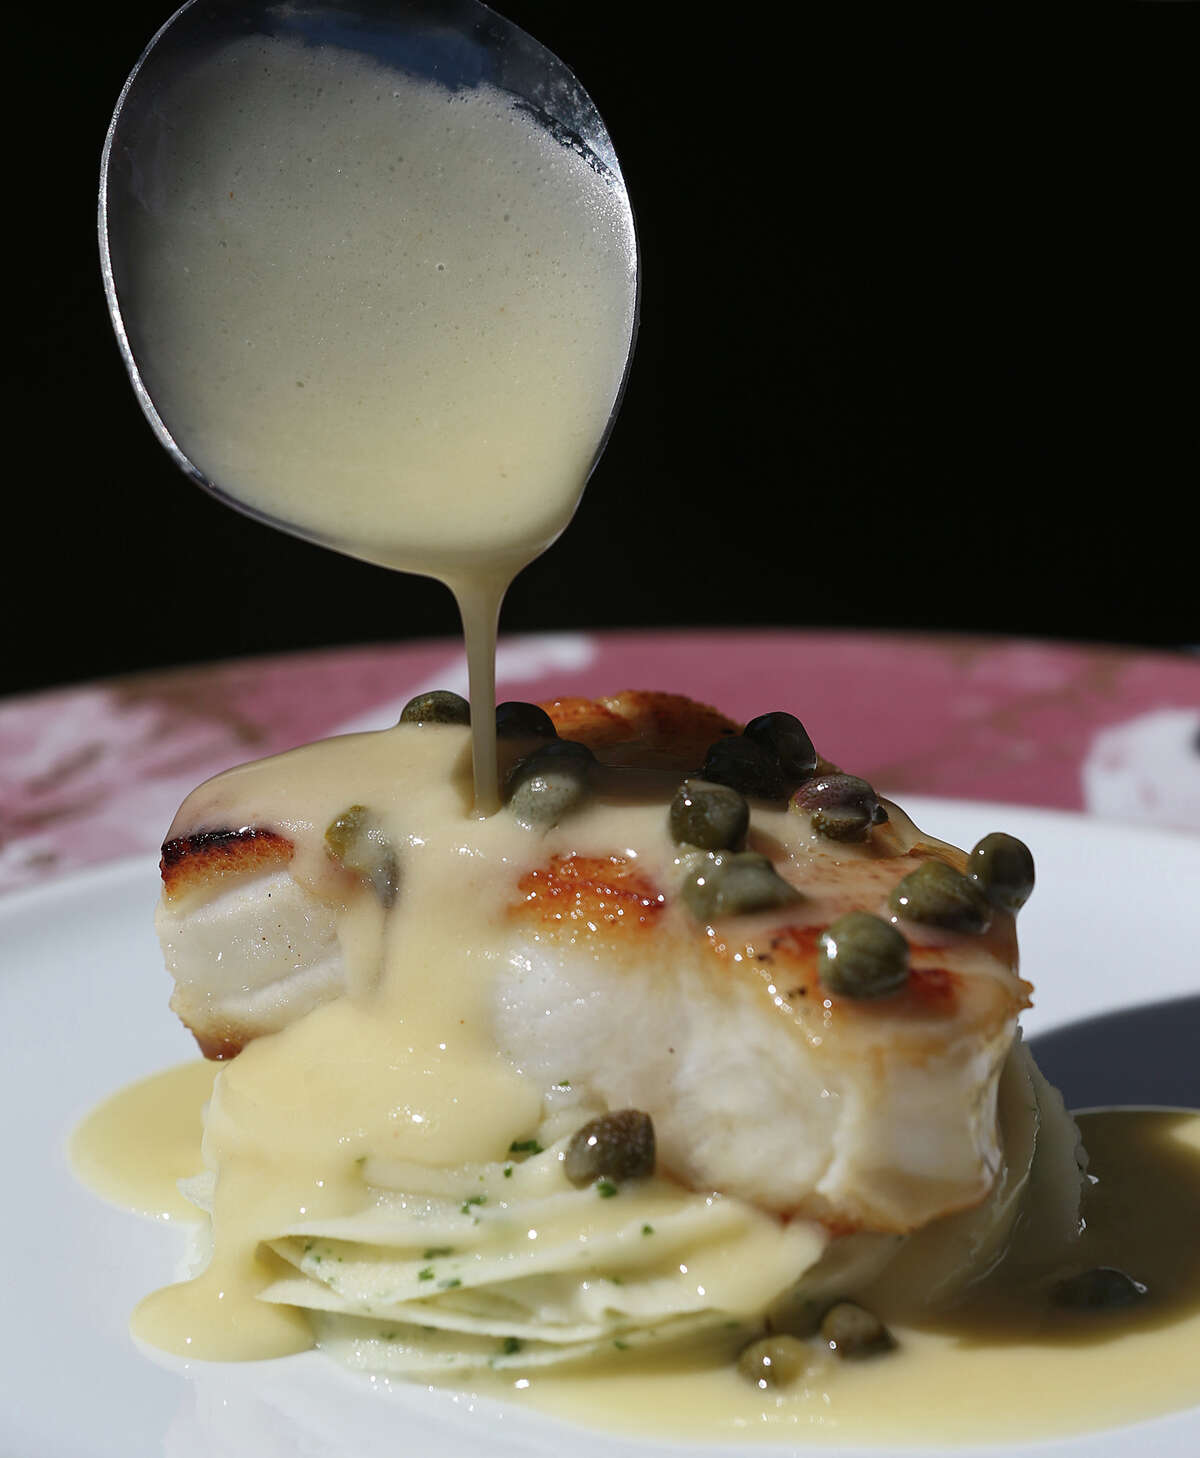 Chilean sea bass with beurre blanc sauce